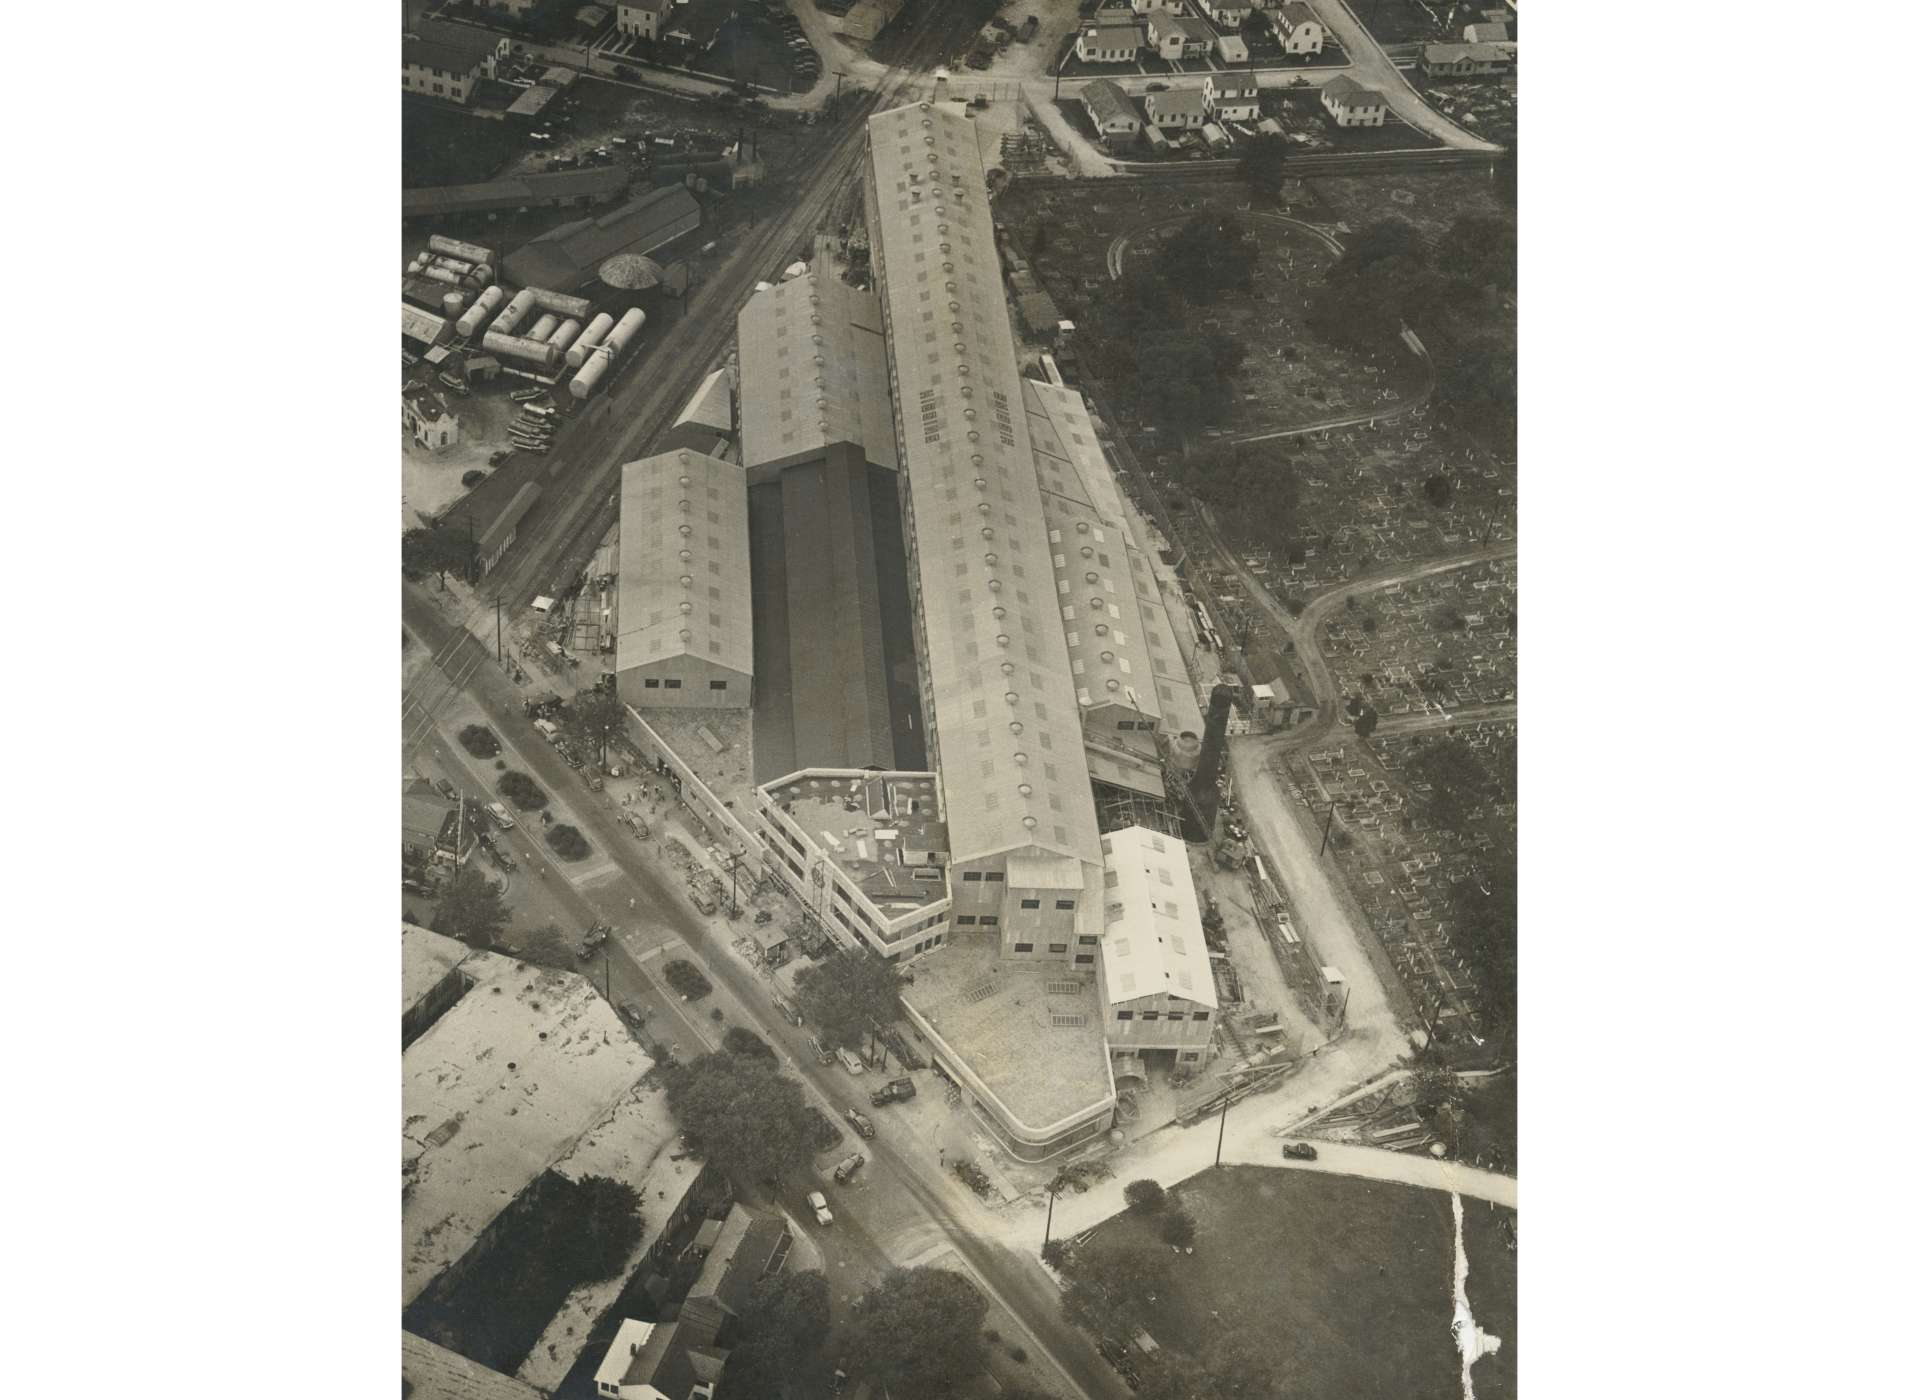 This May 1940 aerial photograph shows City Park Plant in the final stages of construction. When completed, City Park had one PT boat and two landing craft production lines. Higgins, without permission, built nearly 40 percent of the facility on property owned by Holt Cemetery. This property use was not resolved until after the end of World War II.